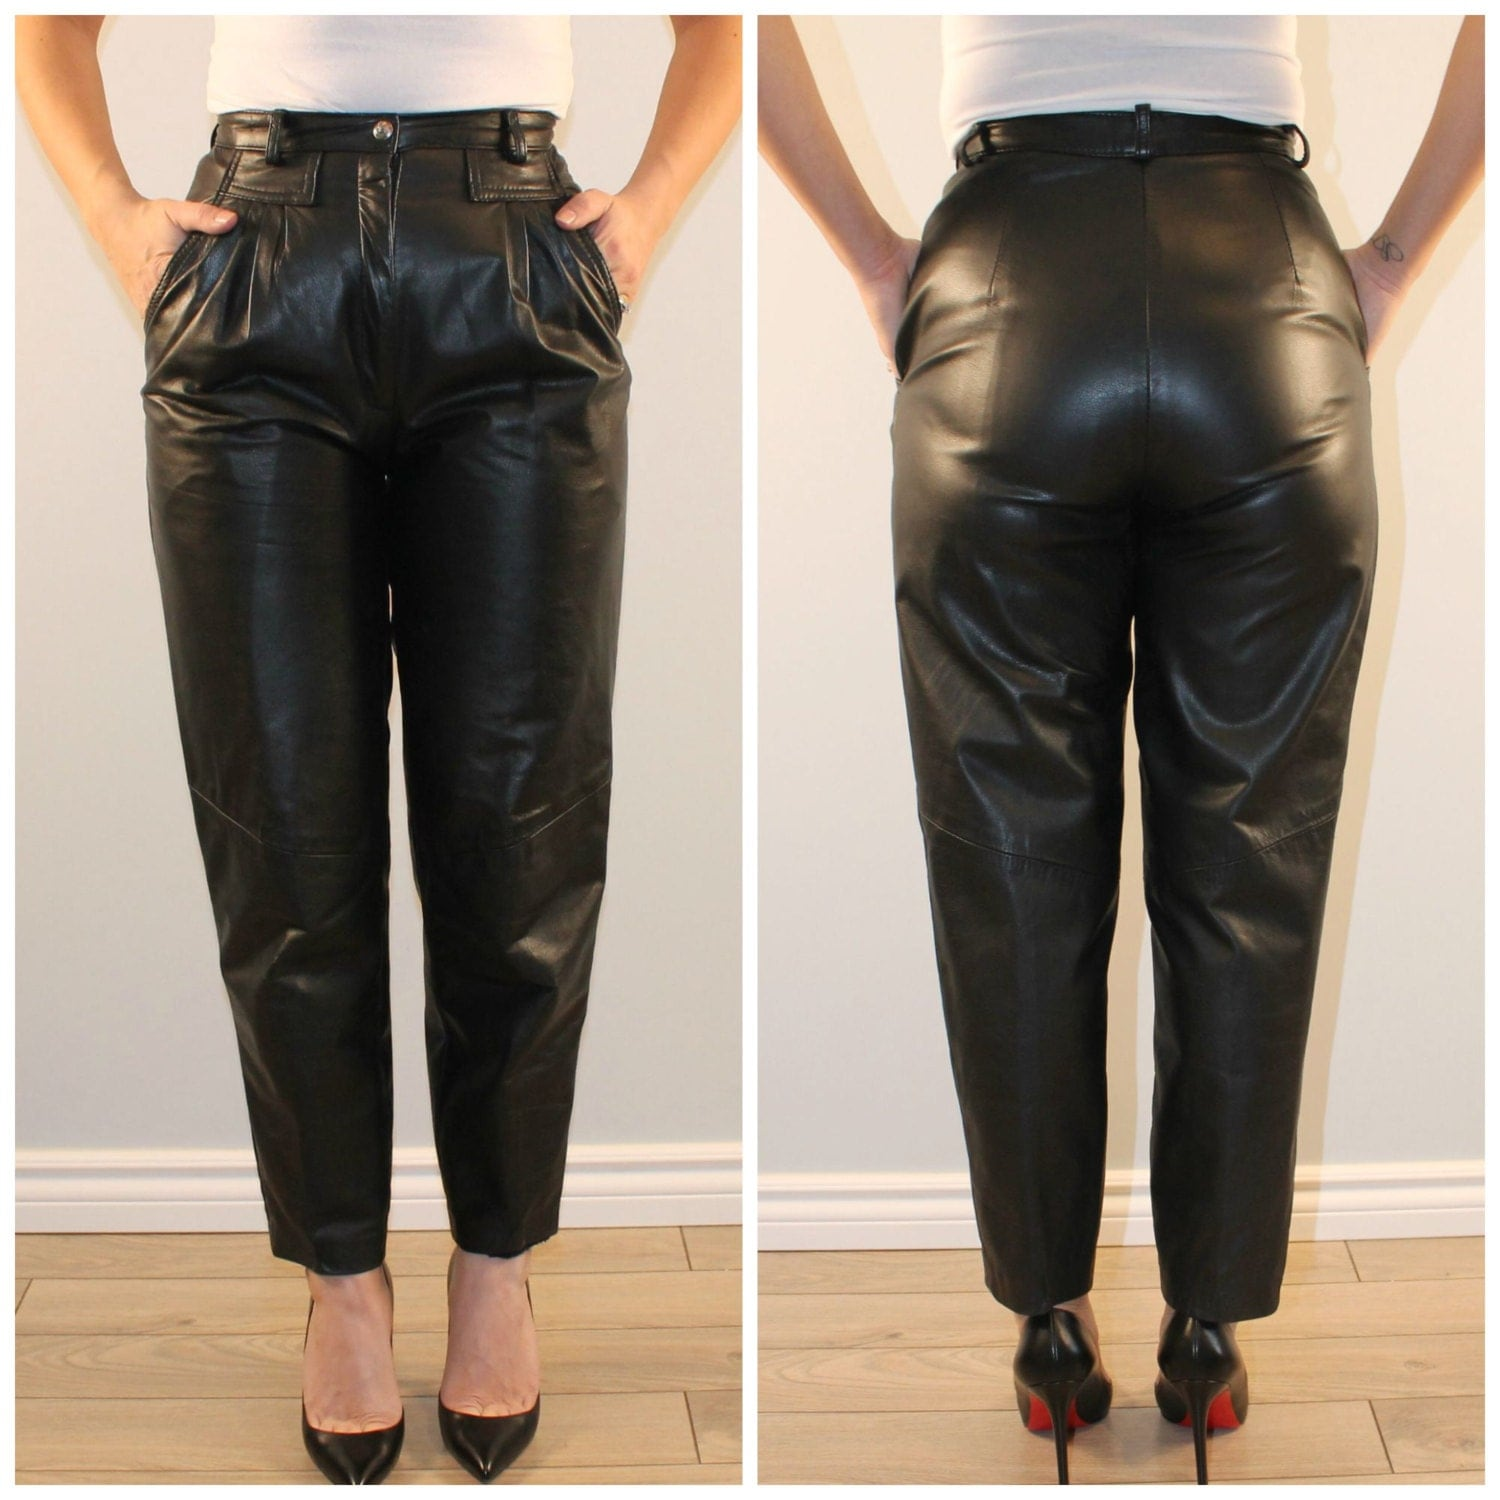 Black leather pants womens - results from brands Balmain, DSQUARED2, Blackhawk, products like Lamarque Kelly-L Stretch Leather Leggings (Black) Women's Casual Pants, ALFANI Faux-Leather-Trim Slim-Leg Pants, Created for Macy's - Black 14, Vince Stretch Suede Crop Pant, Women's Pants.